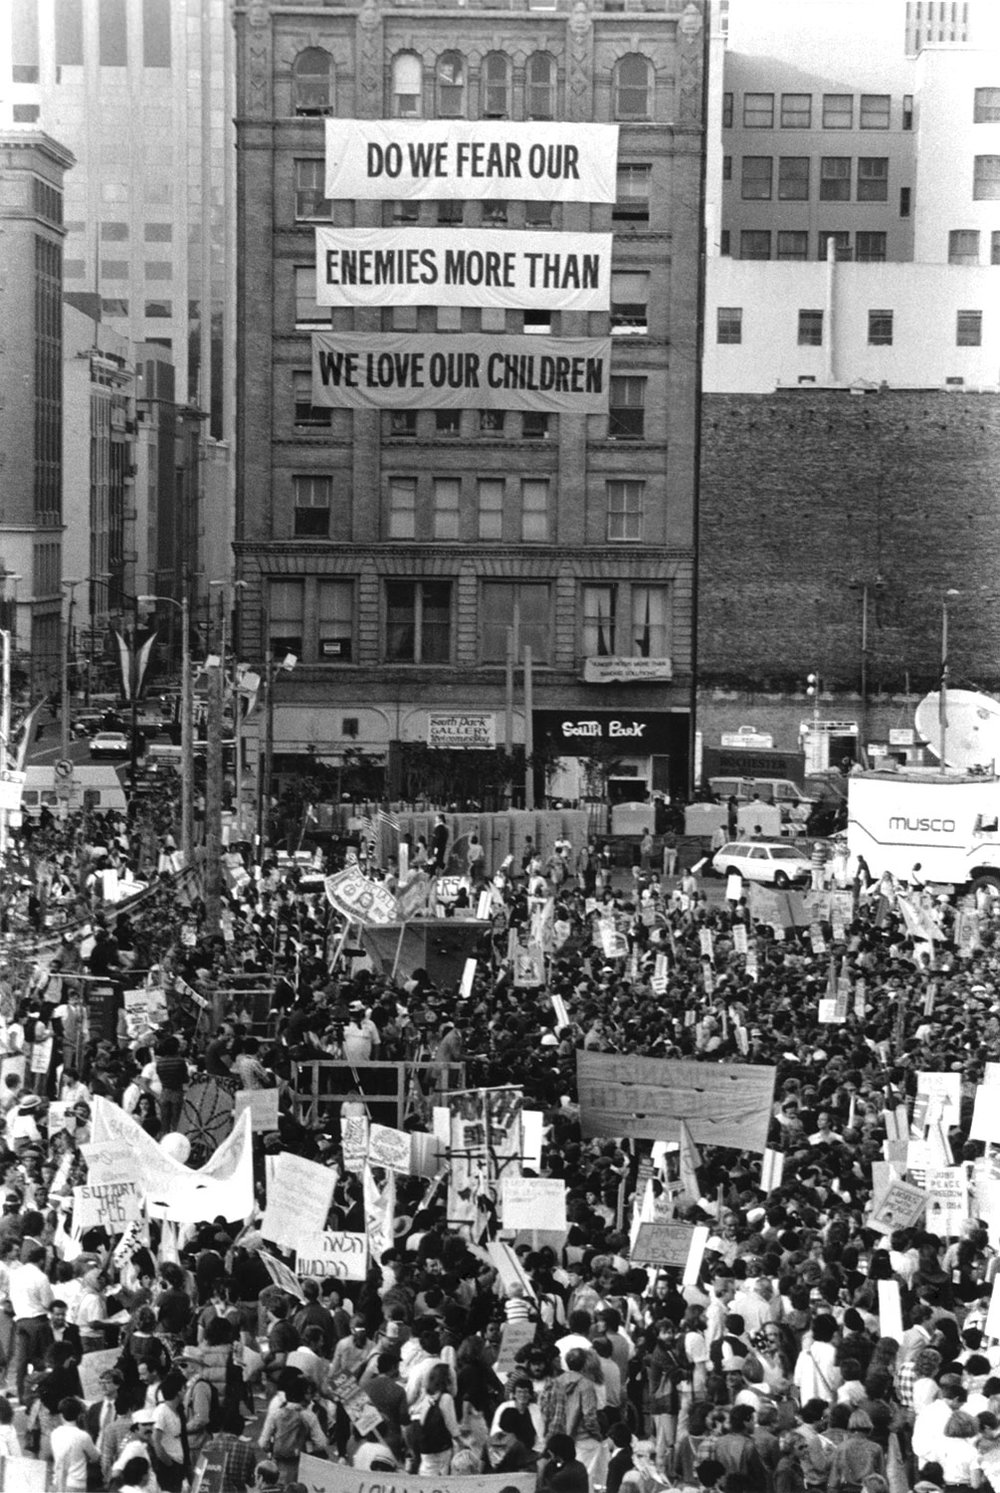 Democratic Convention 1984, Street Protest